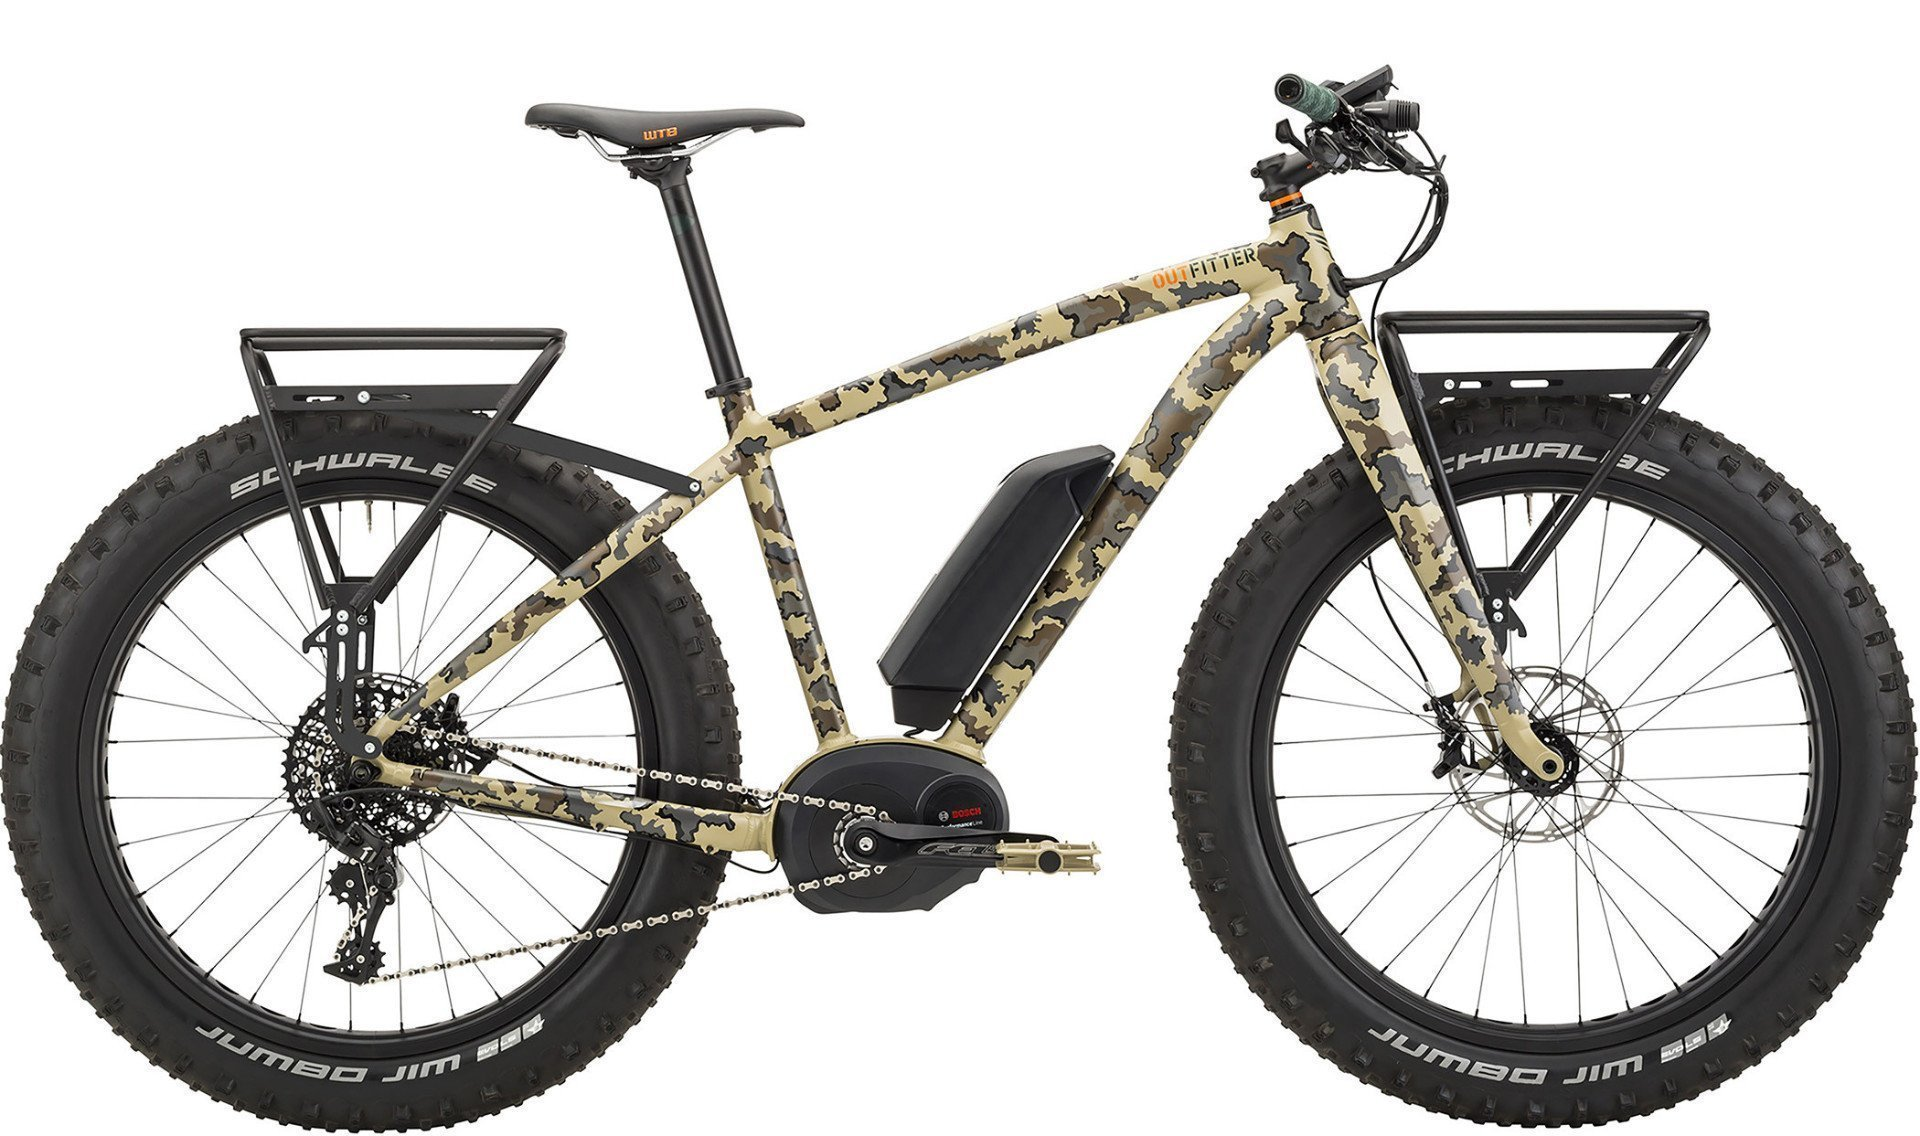 Electric Bicycle For Sale >> E Bike Black Friday Sale High Country Ebikes Electric Bike Sale